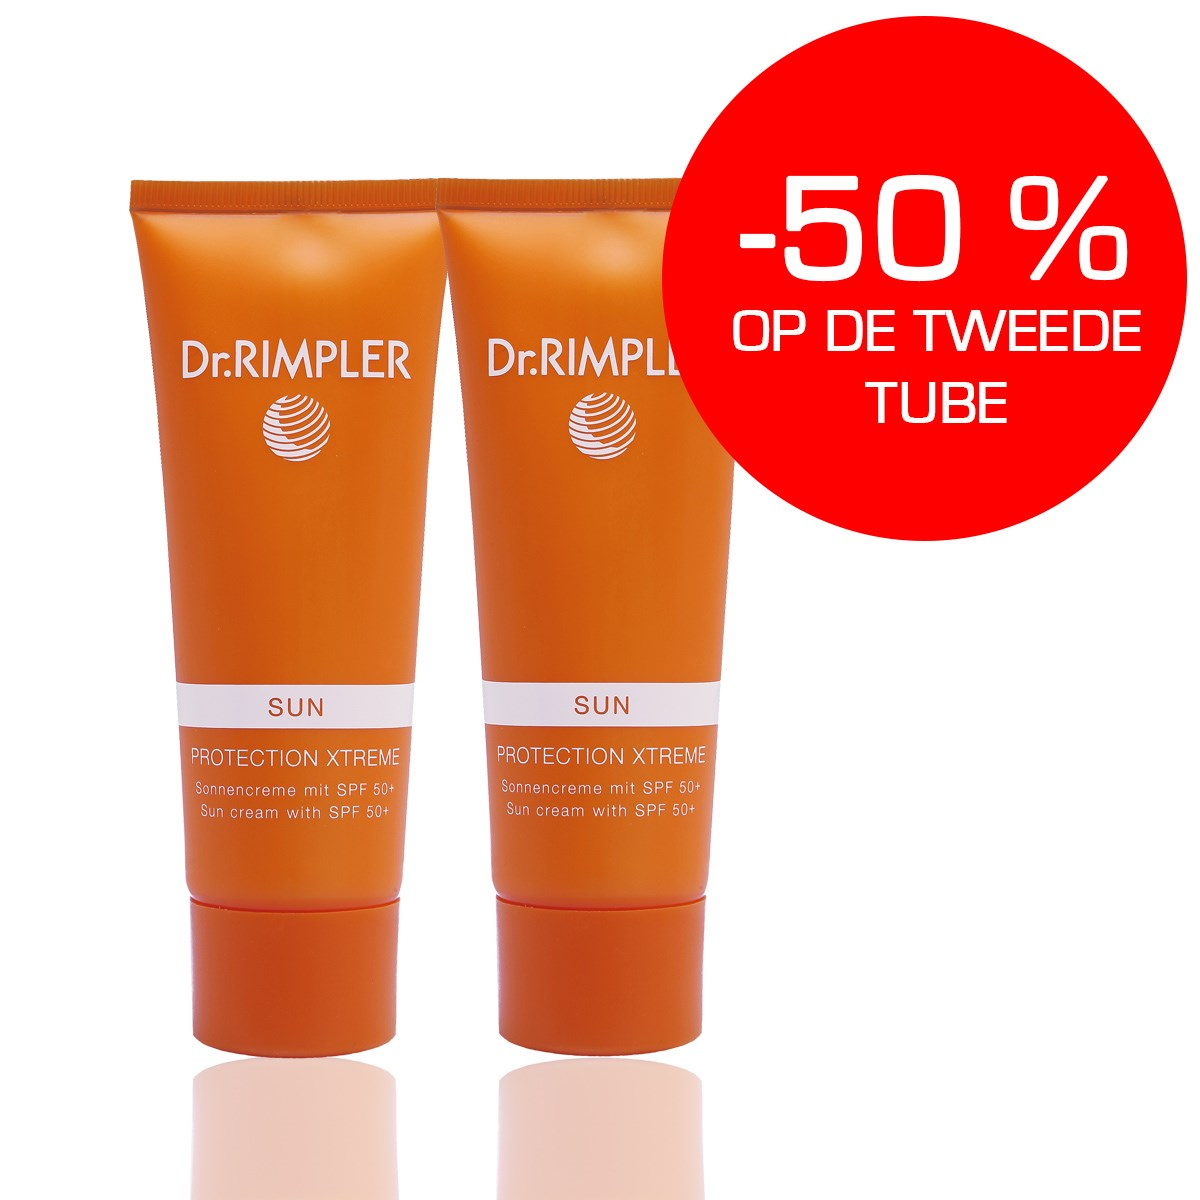 DR RIMPLER SUN SPF50+ DUO PACK 2x75ml